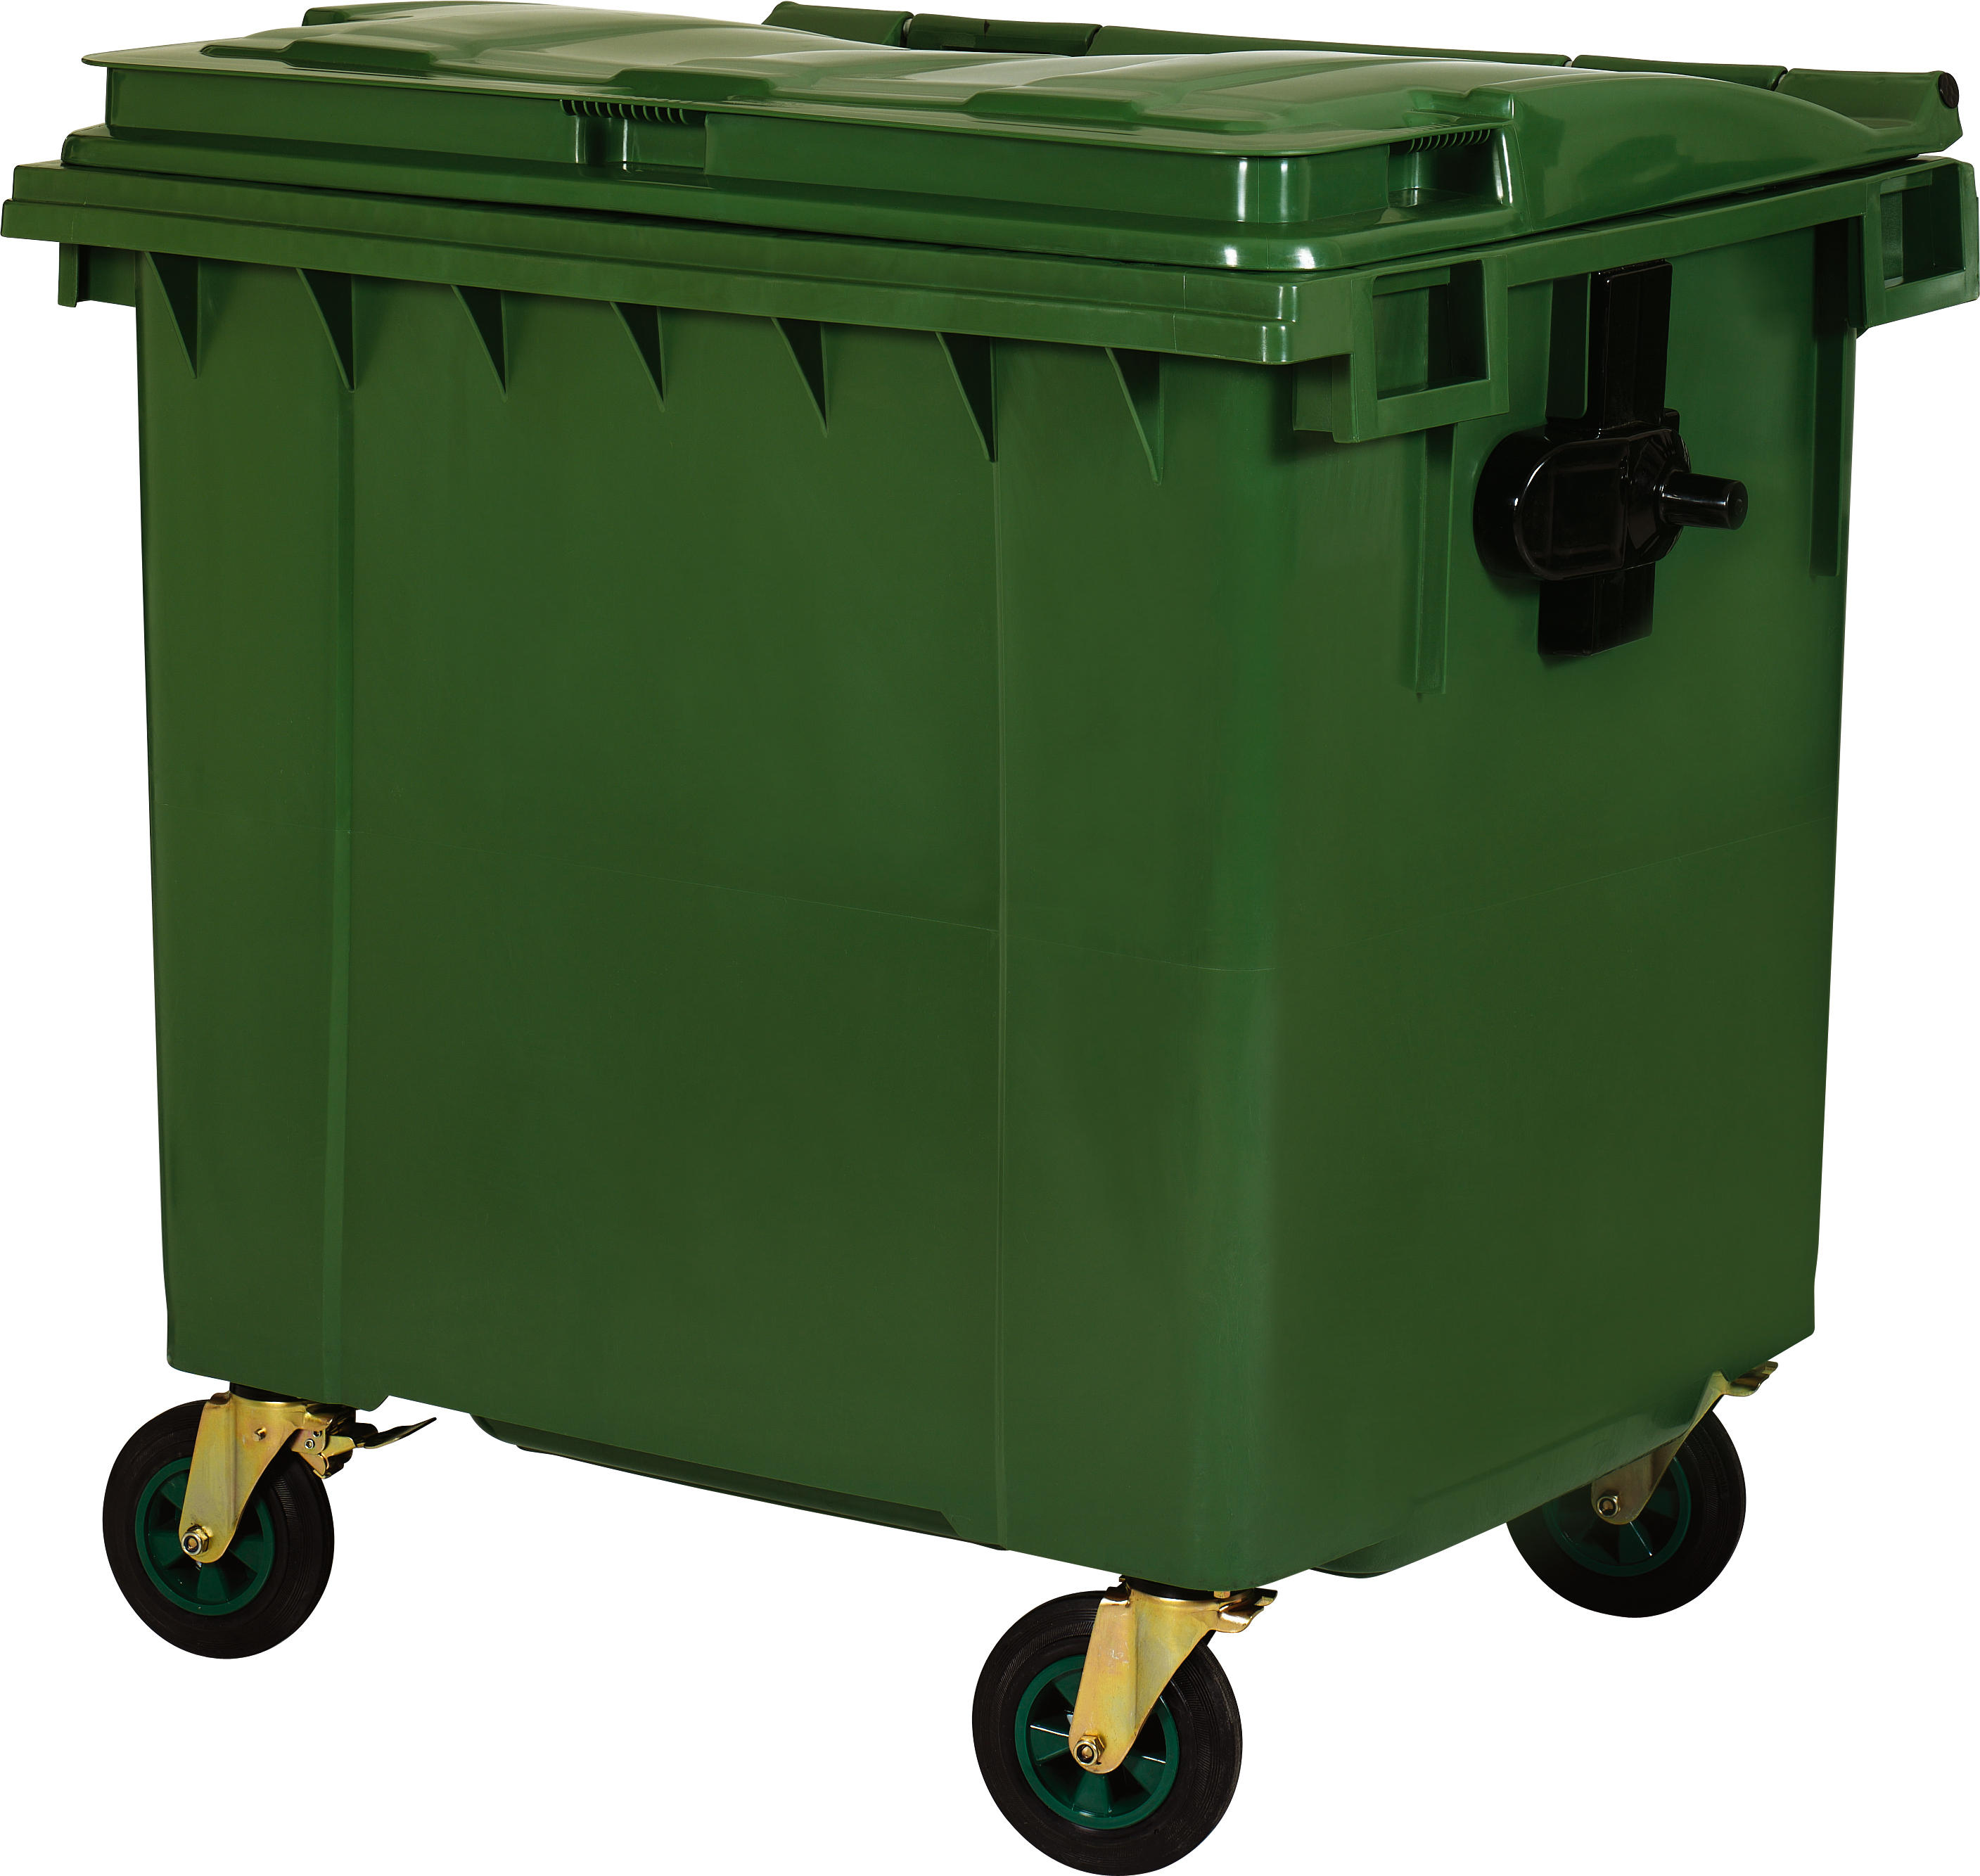 1100L Plastic Trashbin Hot Sale Recycling Outdoor Waste Garbage Bin Cans